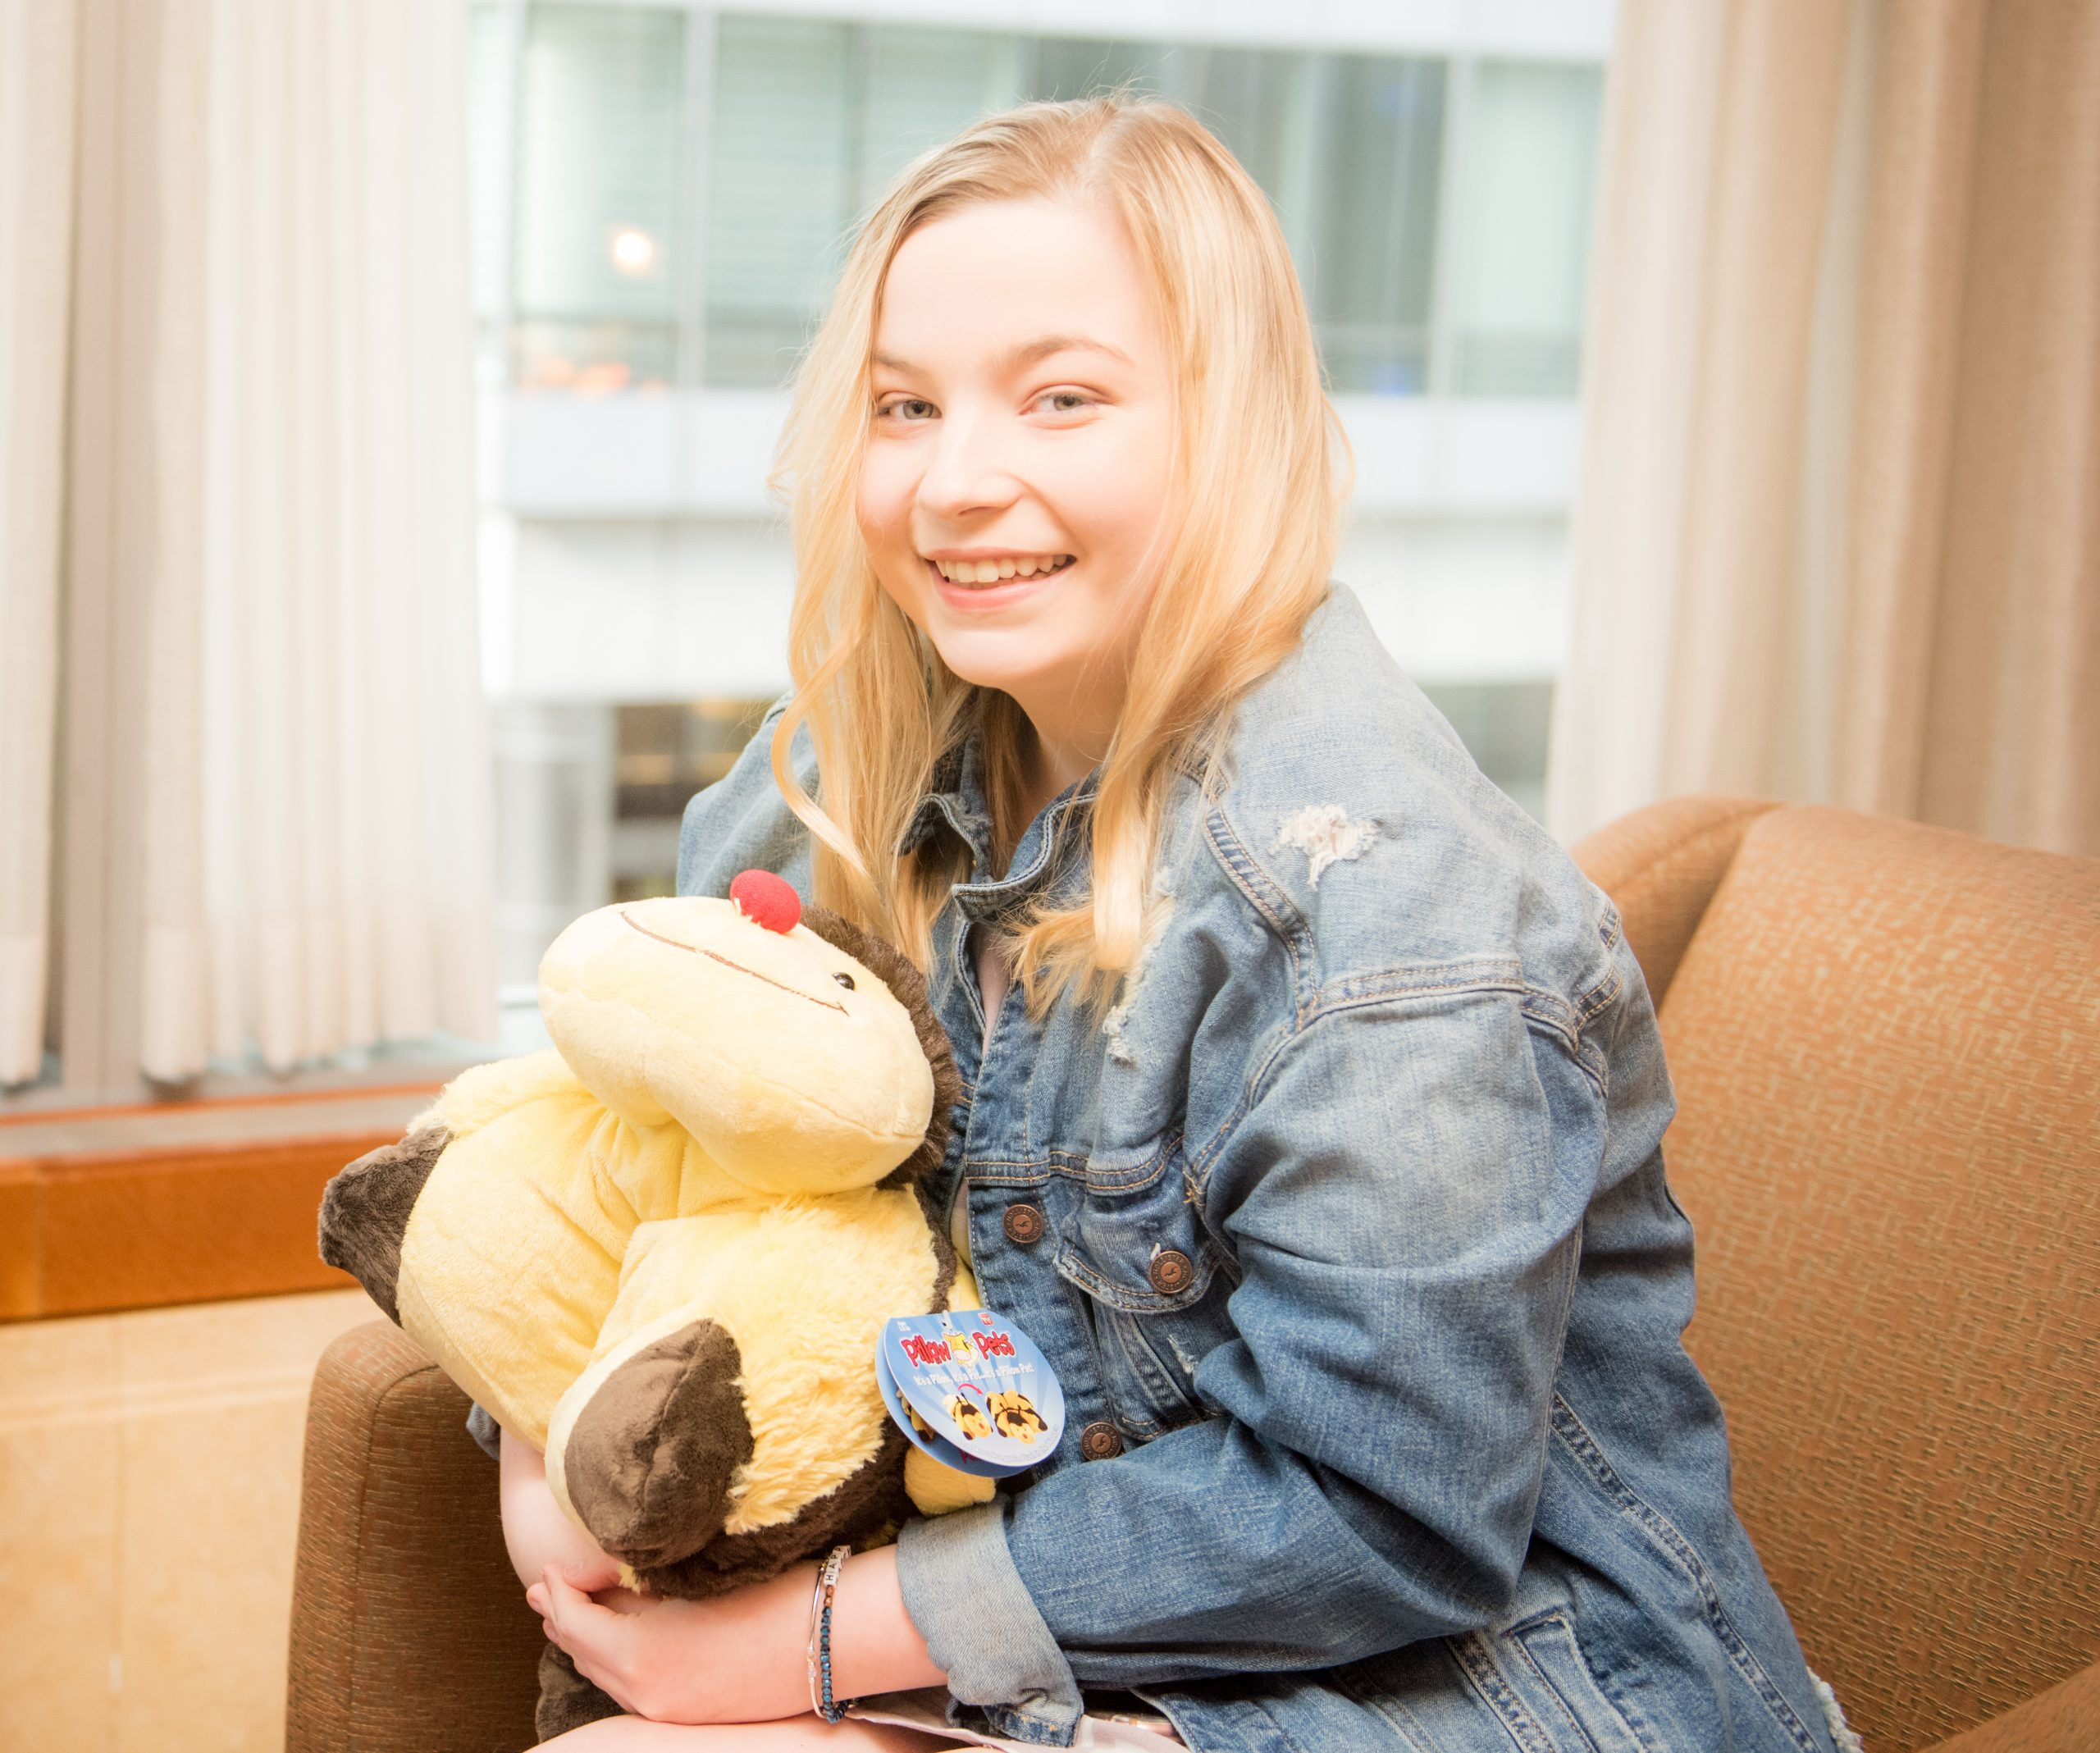 clb-camille-with-pillow-pet-2017-1